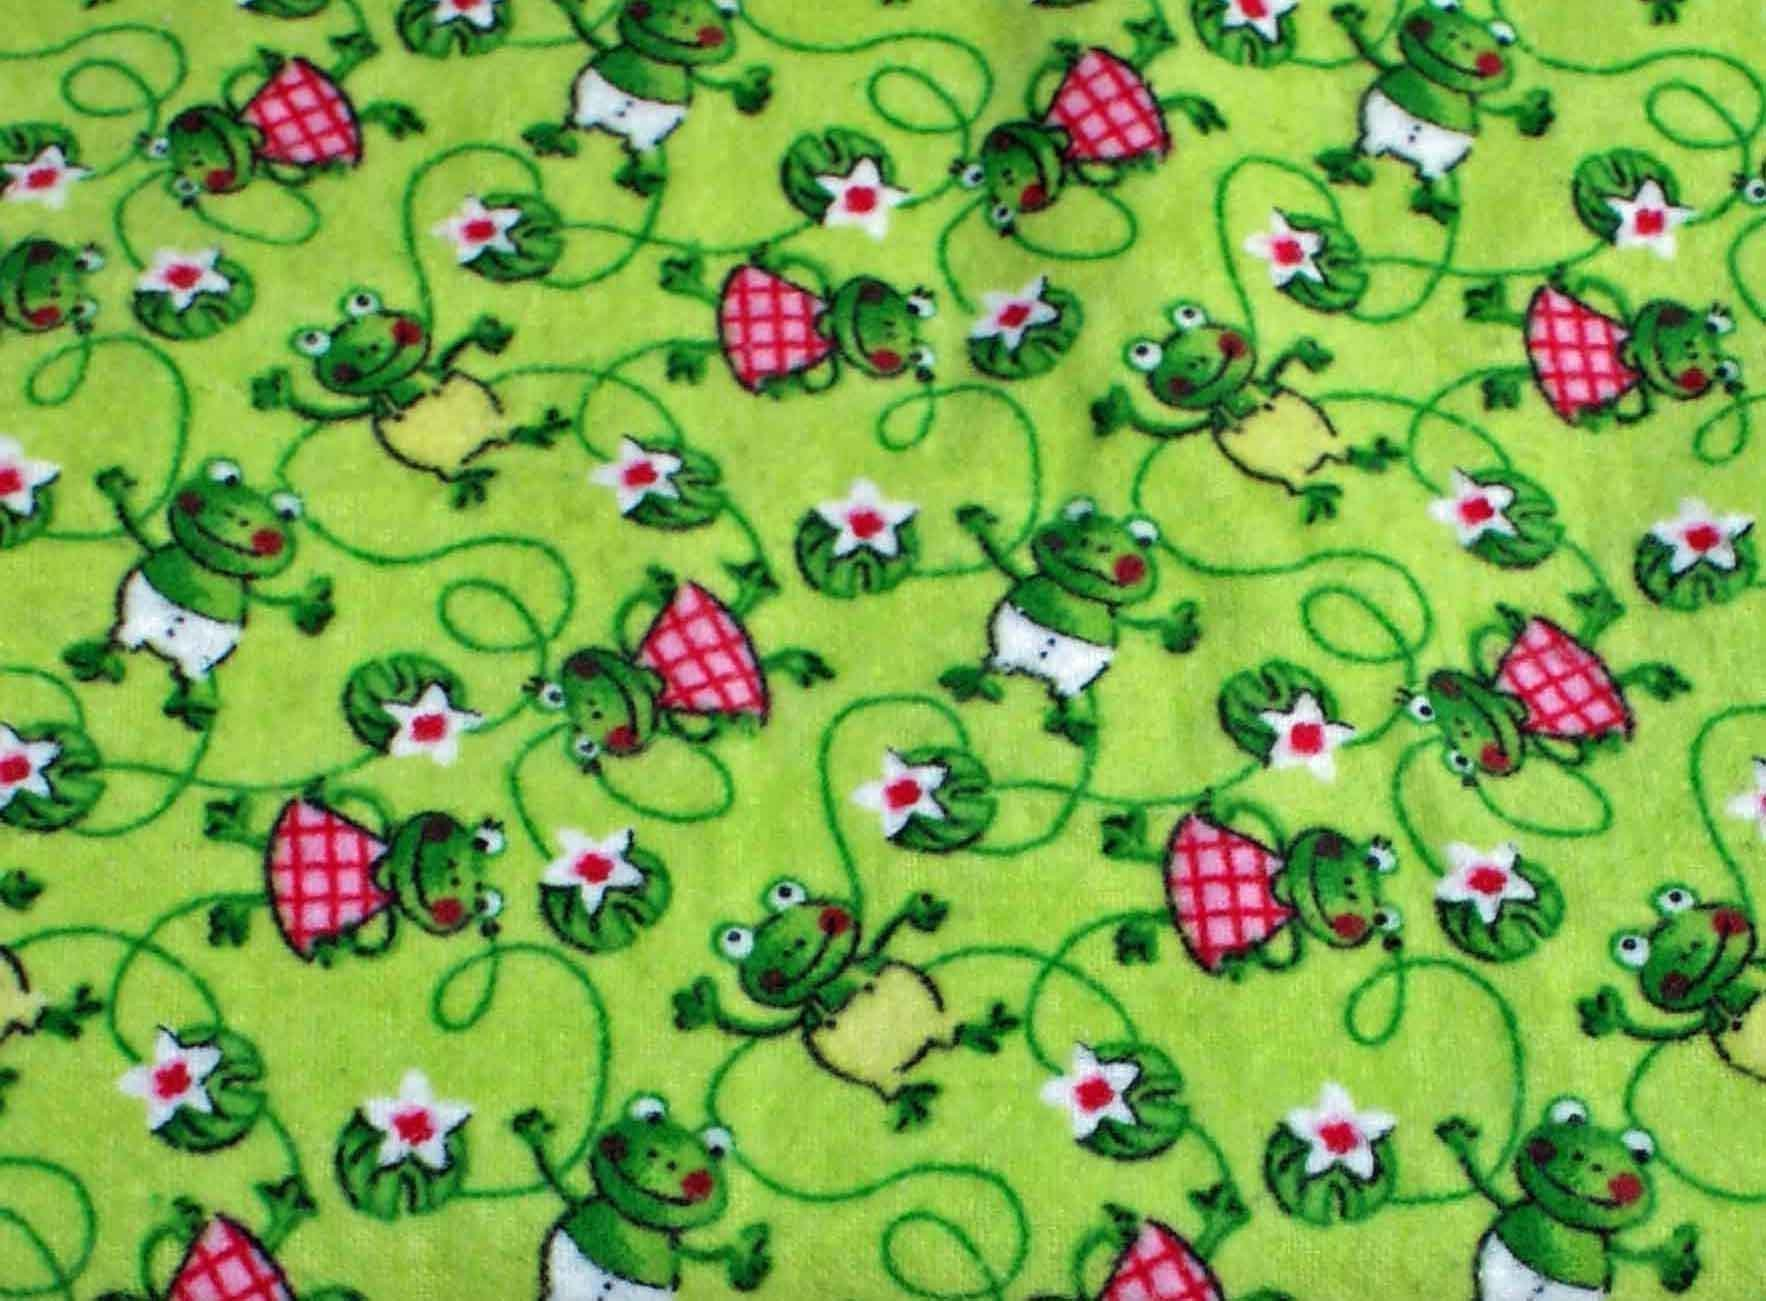 Pocket-2in1-Sheet Frog Pattern & Pale Yellow Flannel 2 in 1 Patented No Slip Reversible Pack n Play Play Yard Fitted Sheet Cover or Day Care Mini Crib Mattress Sheet